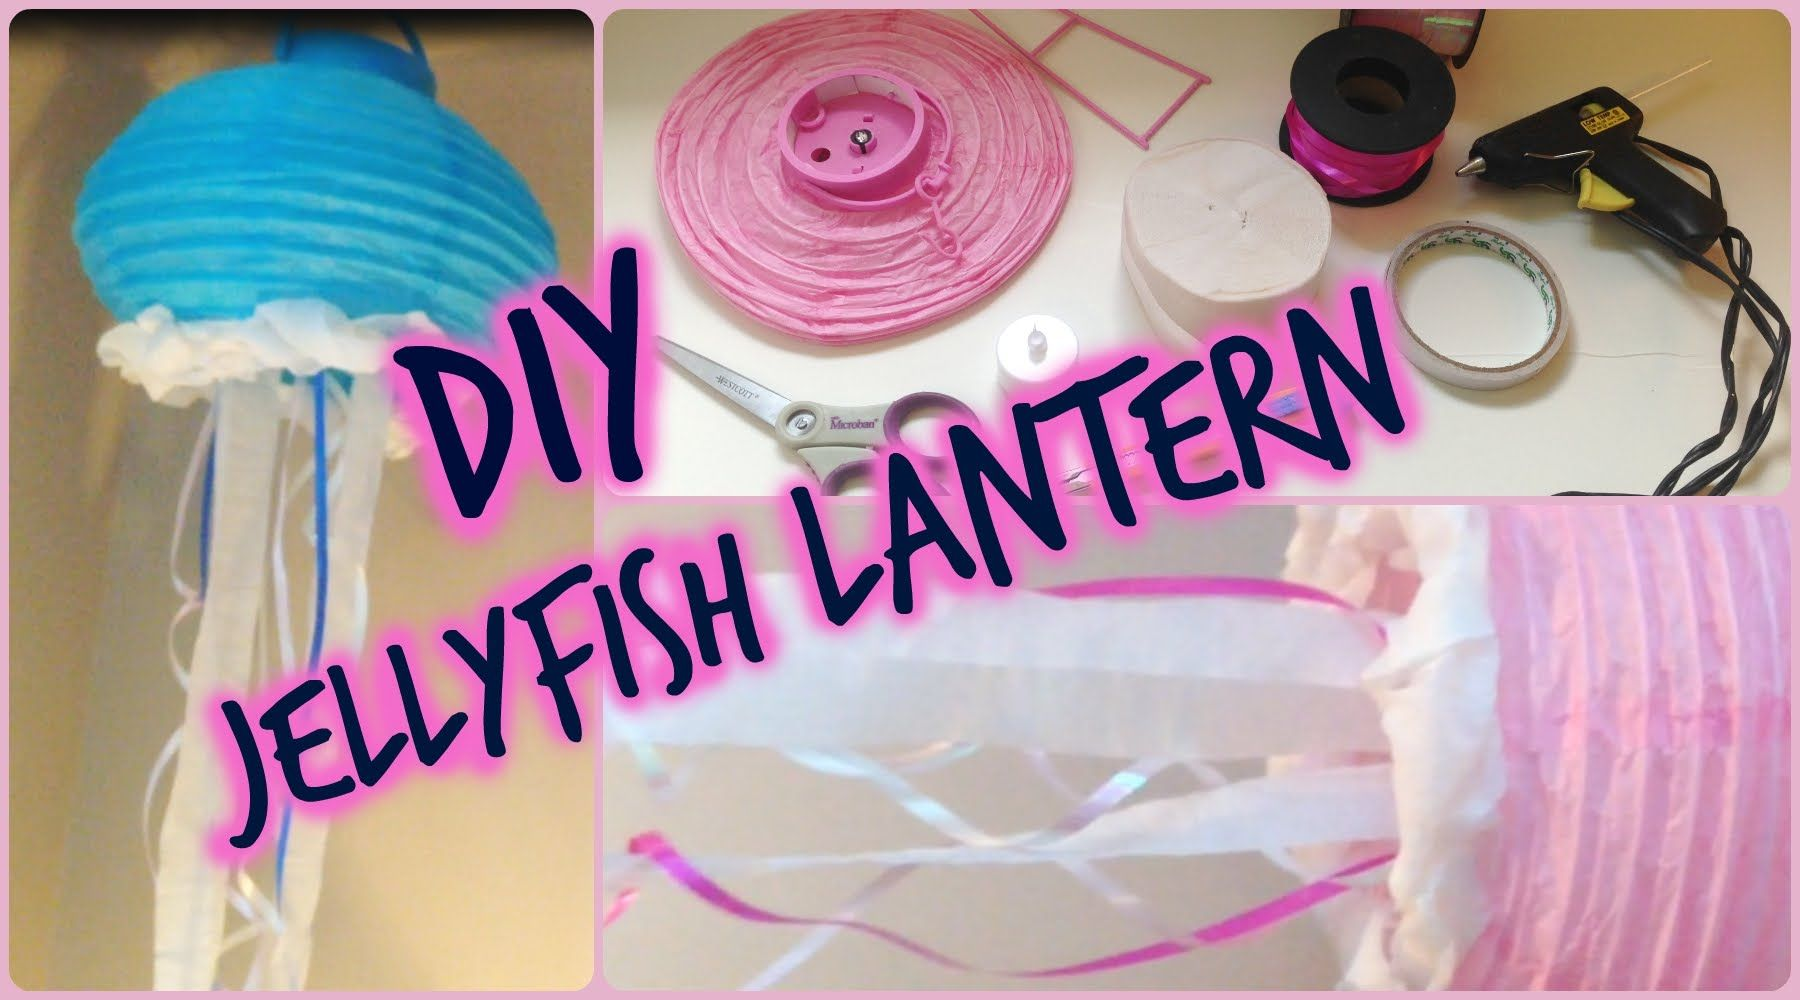 Paper Lantern Jellyfish Stunning Diy Jellyfish Lanterns  Noah's Shower  Pinterest  Jellyfish And Design Ideas